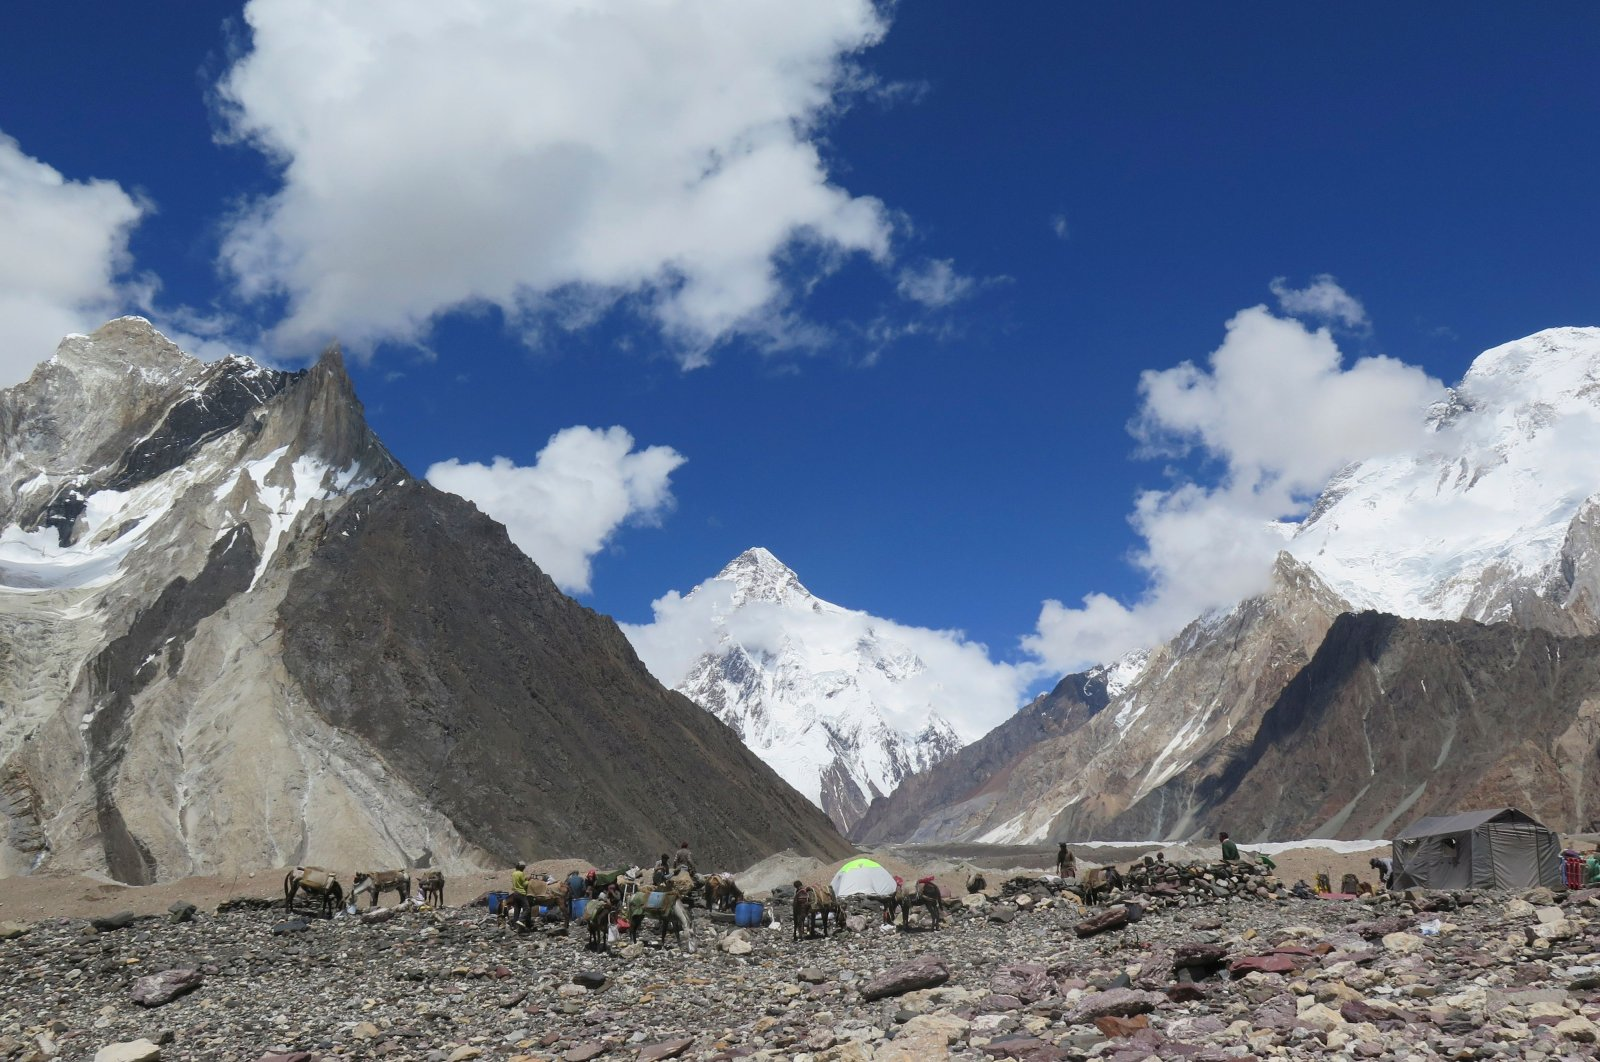 Porters set up tents at the Concordia camping site in front of the K2 summit (C) in the Karakoram range of the Gilgit region, northern Pakistan, Aug. 14, 2019. (AFP Photo)